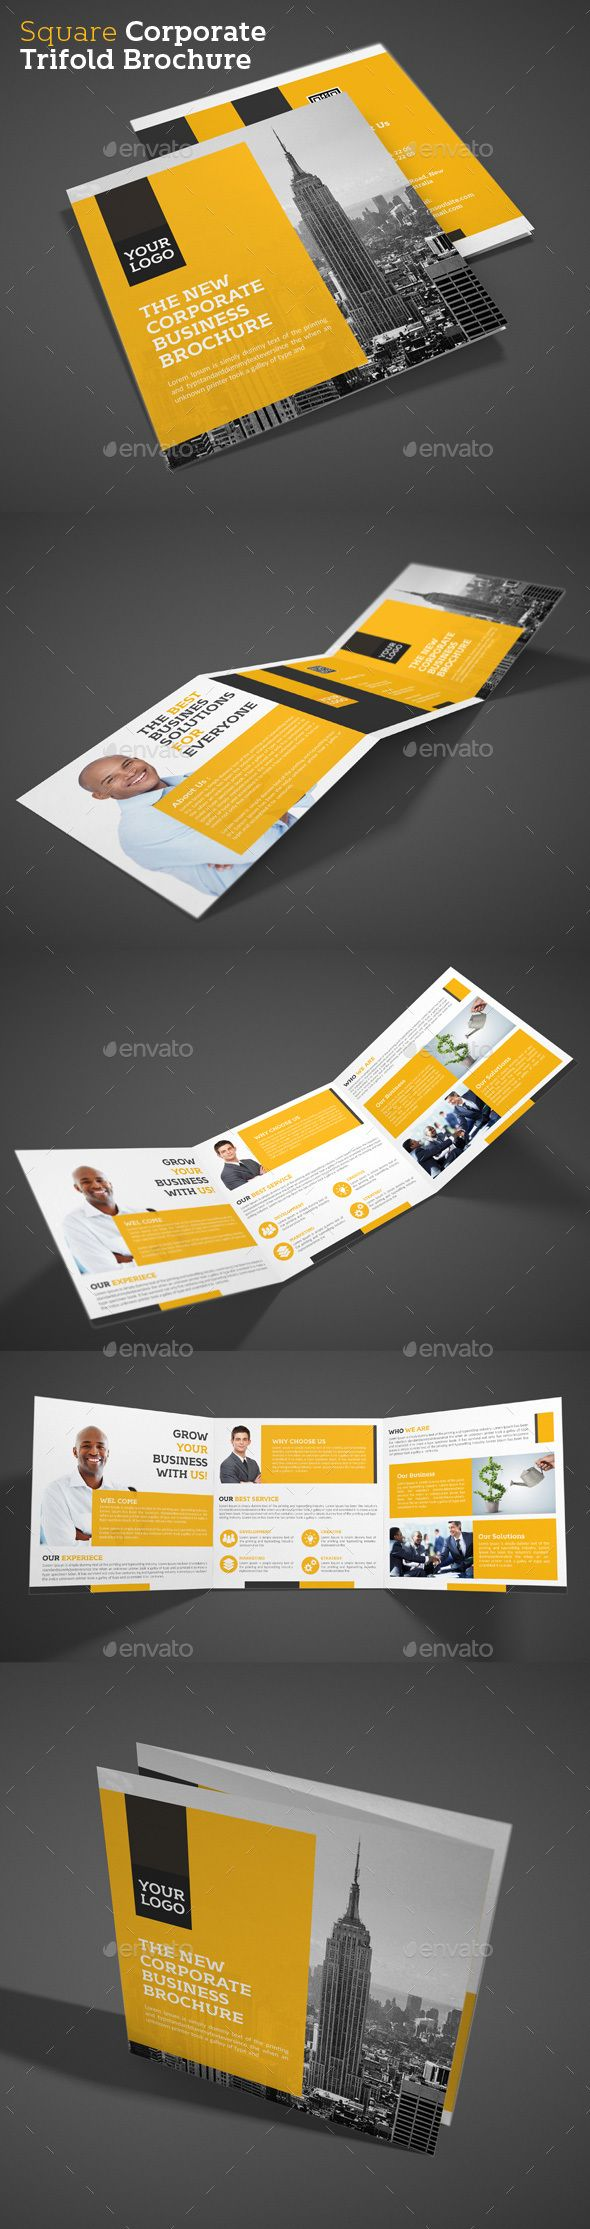 Square Corporate Trifold Brochure Template PSD #design Download…